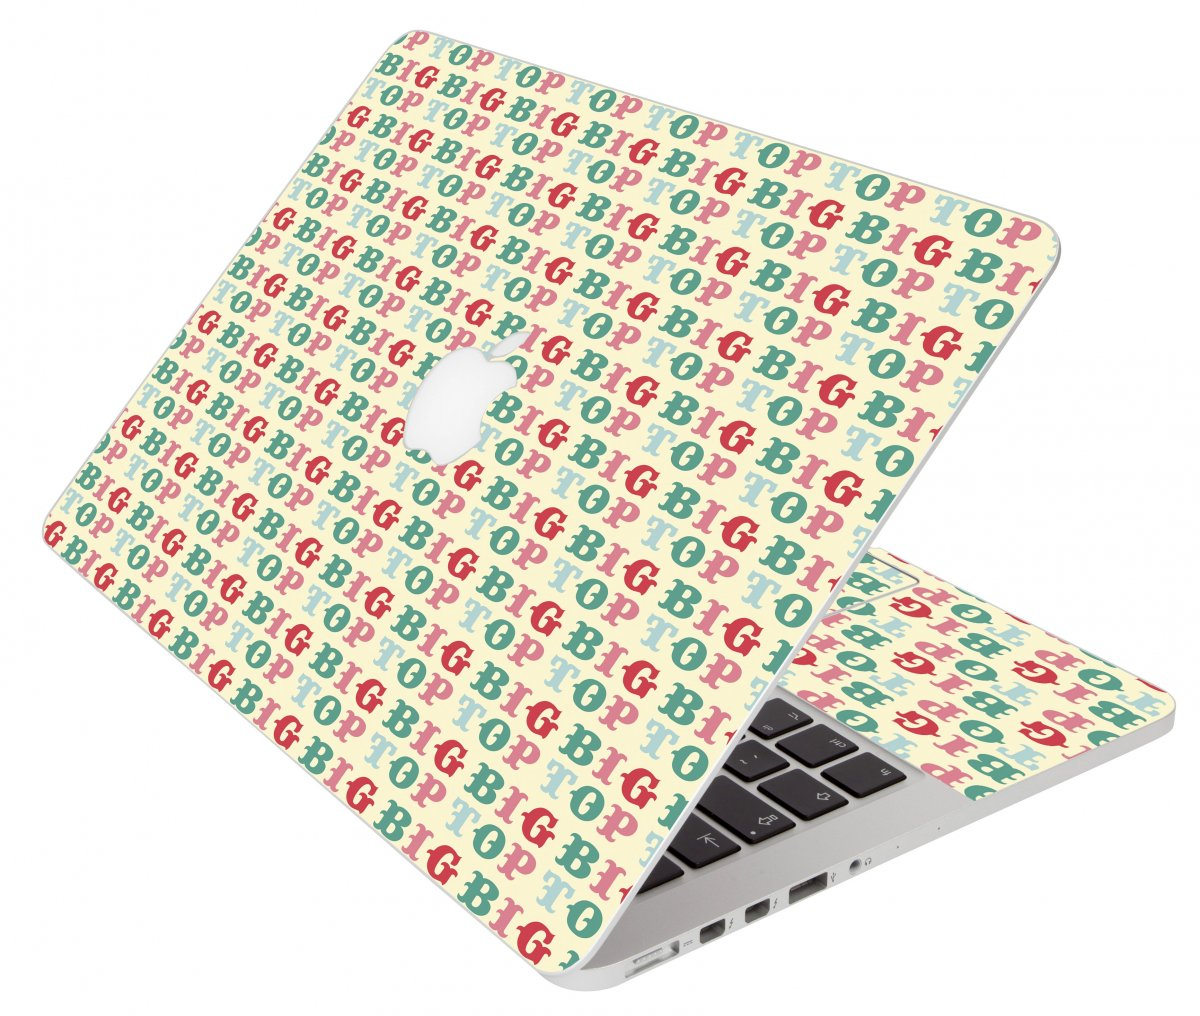 Bigtop Apple Macbook Air 11 A1370 Laptop Skin